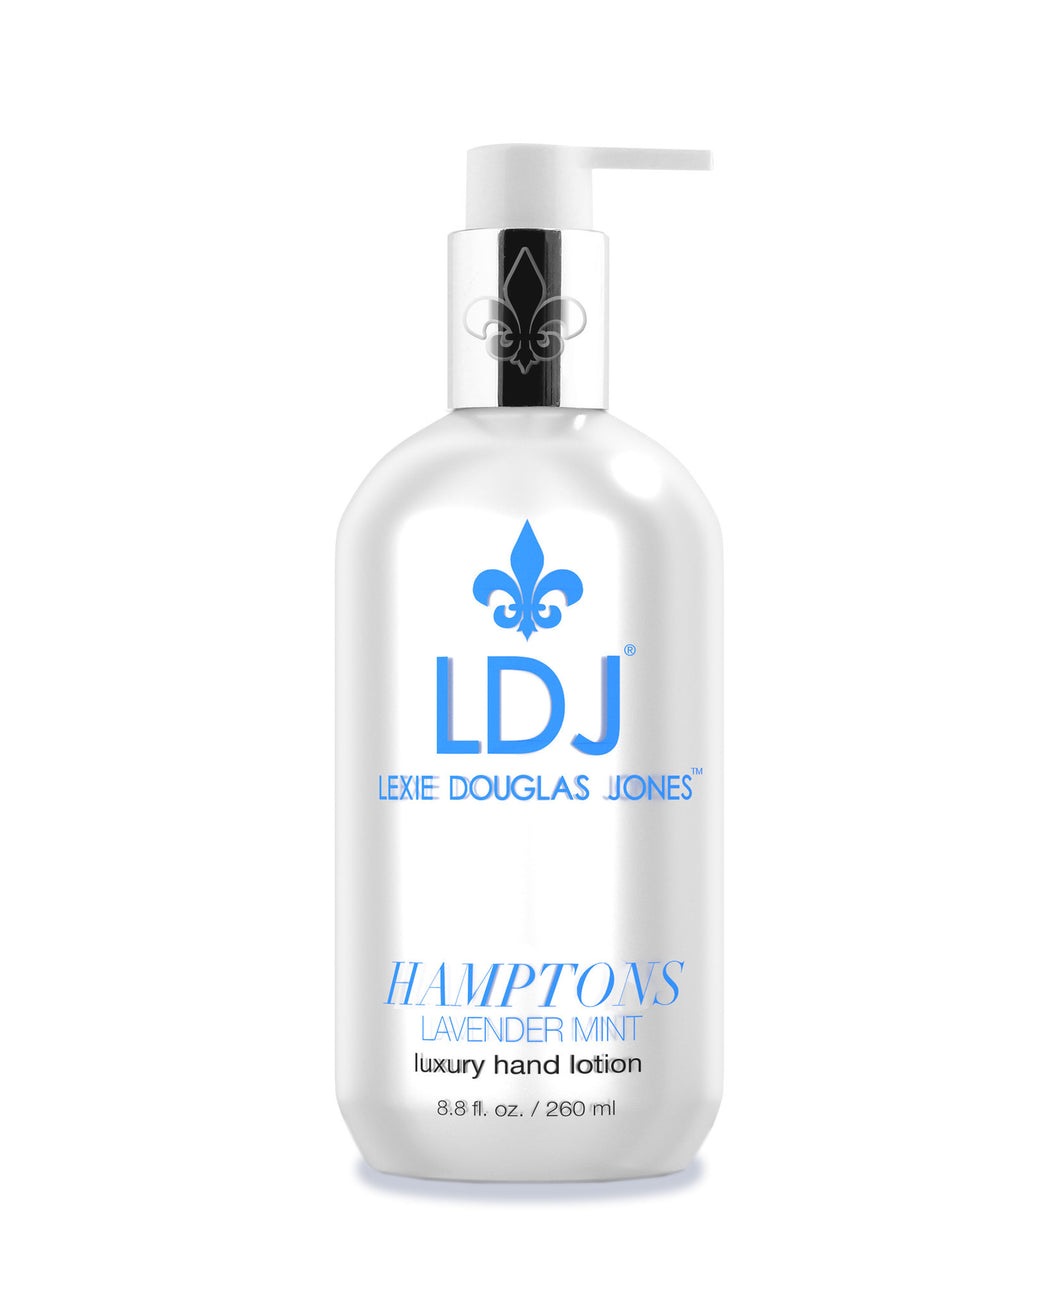 Hamptons Luxury Hand Lotion